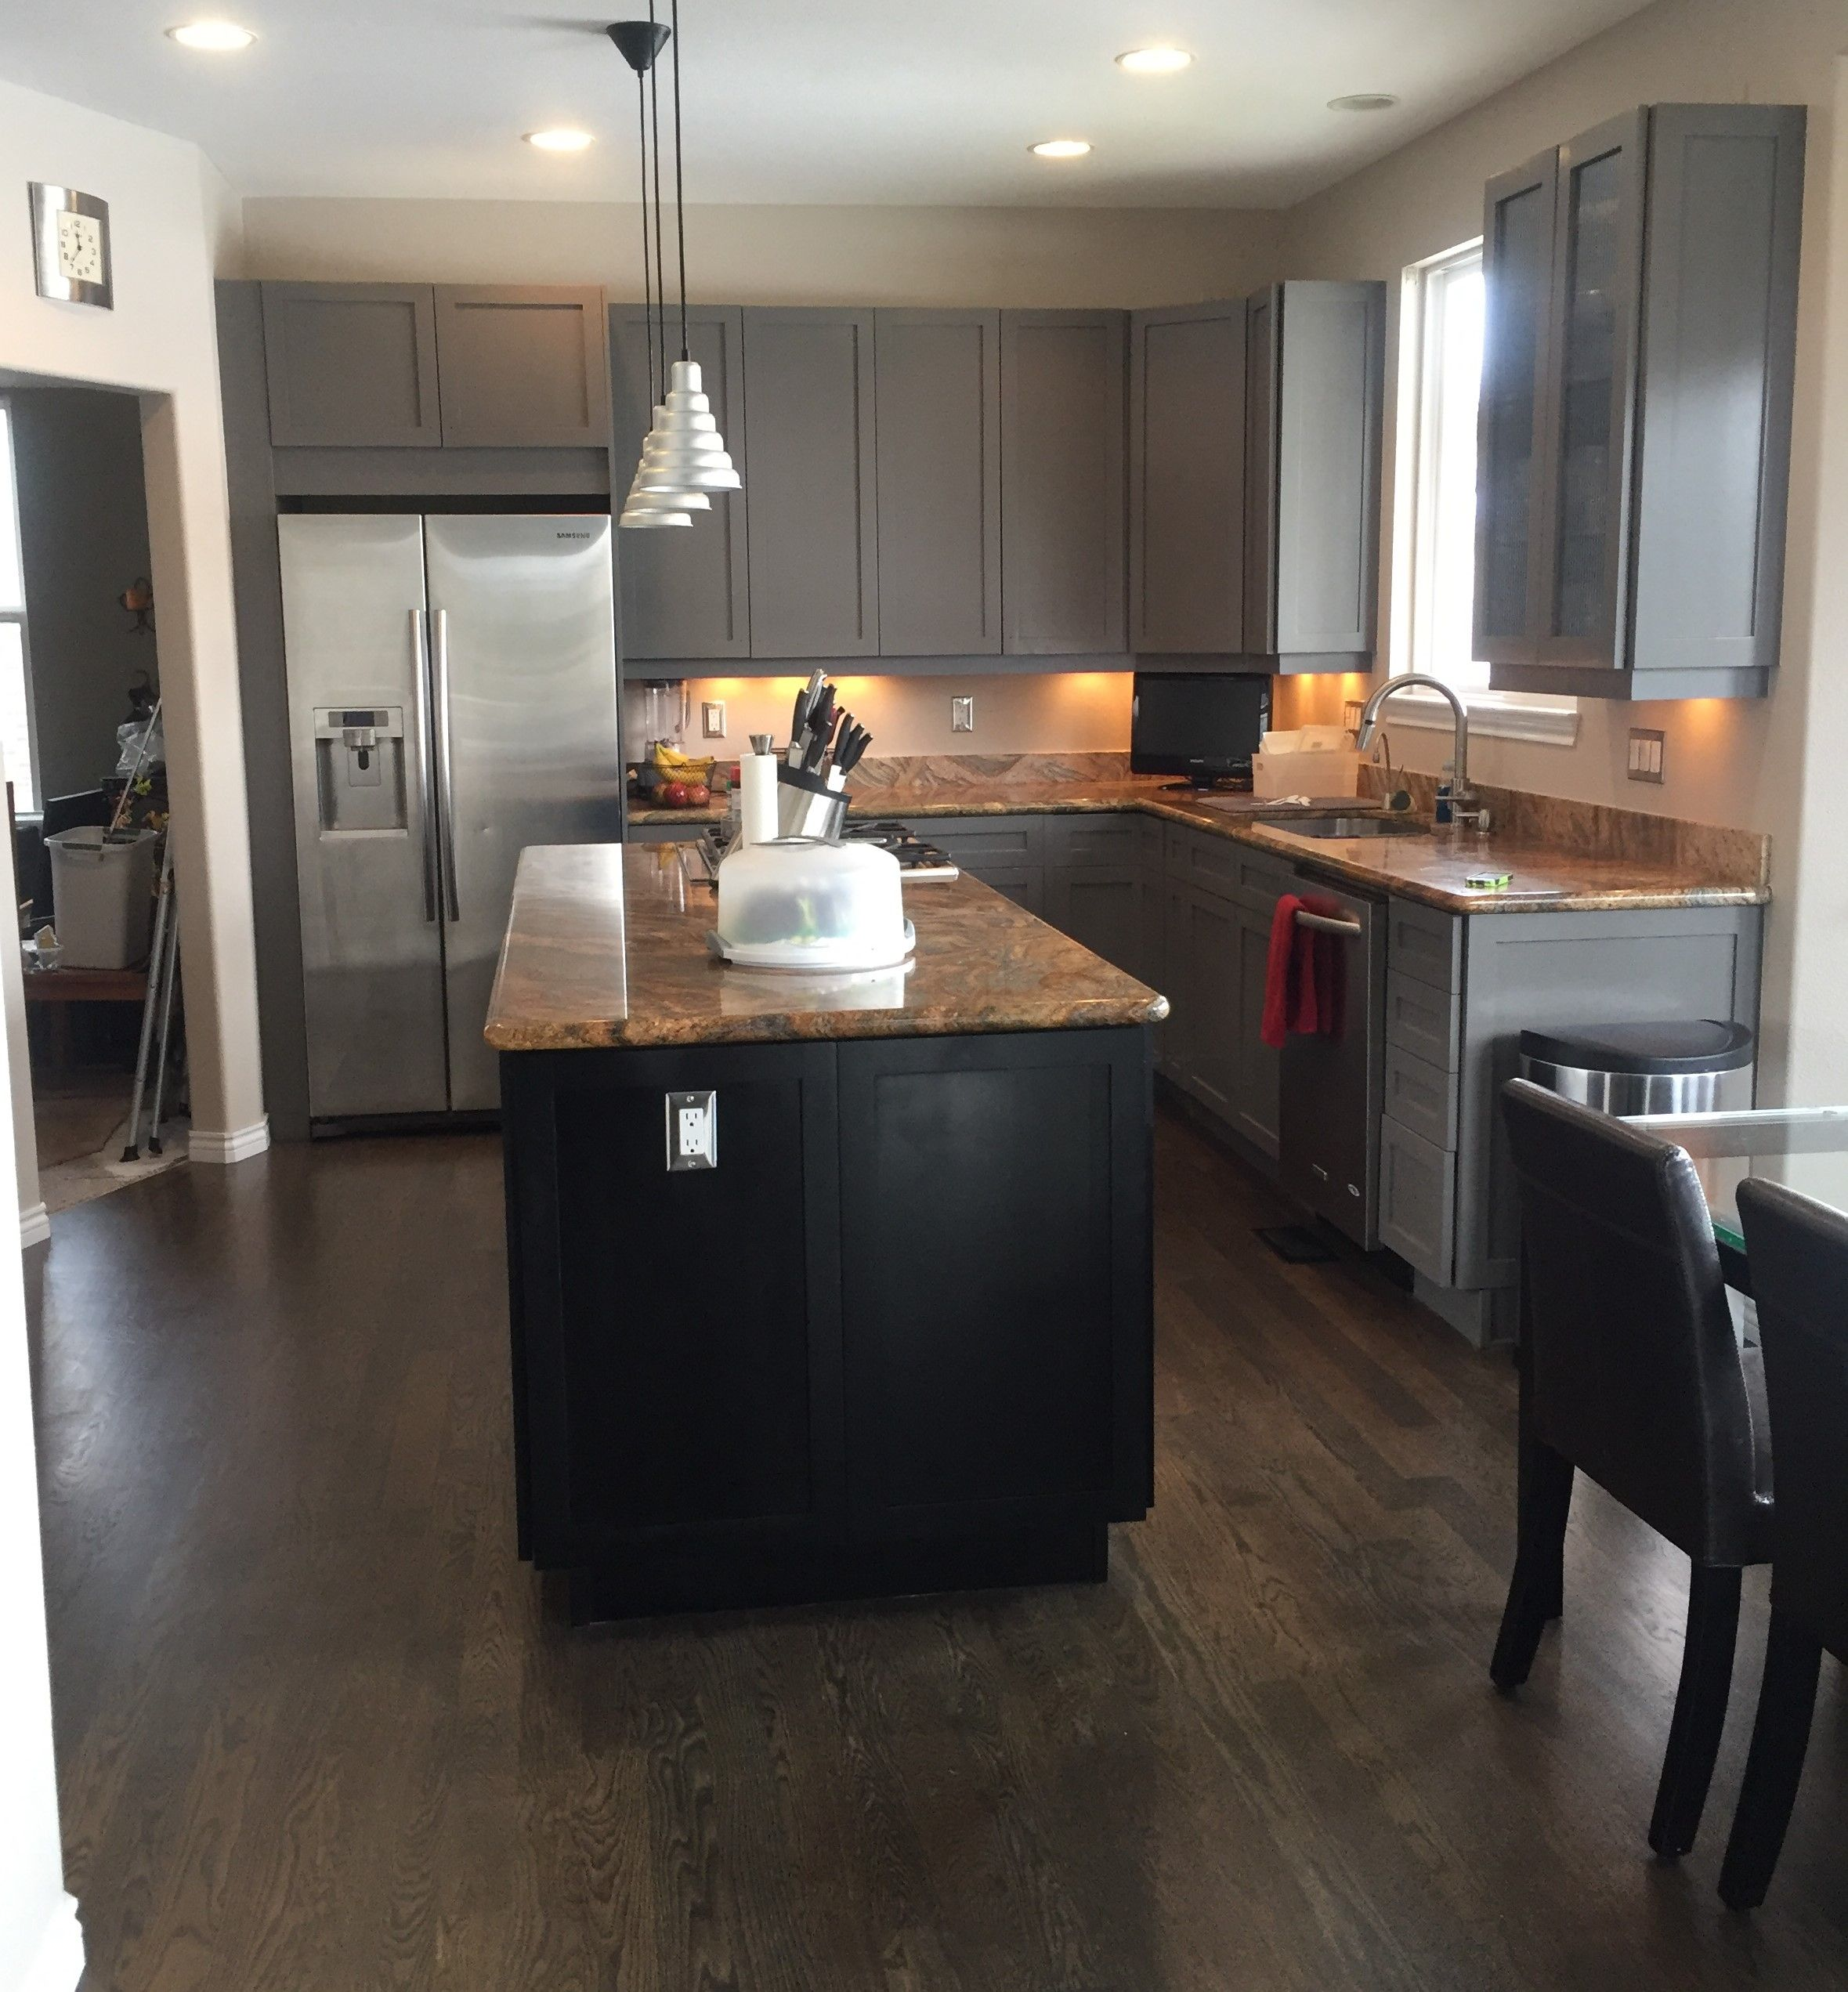 Gray And Black Kitchen Cabinets In 2020 Kitchen Refinishing Black Kitchen Cabinets Black Kitchens